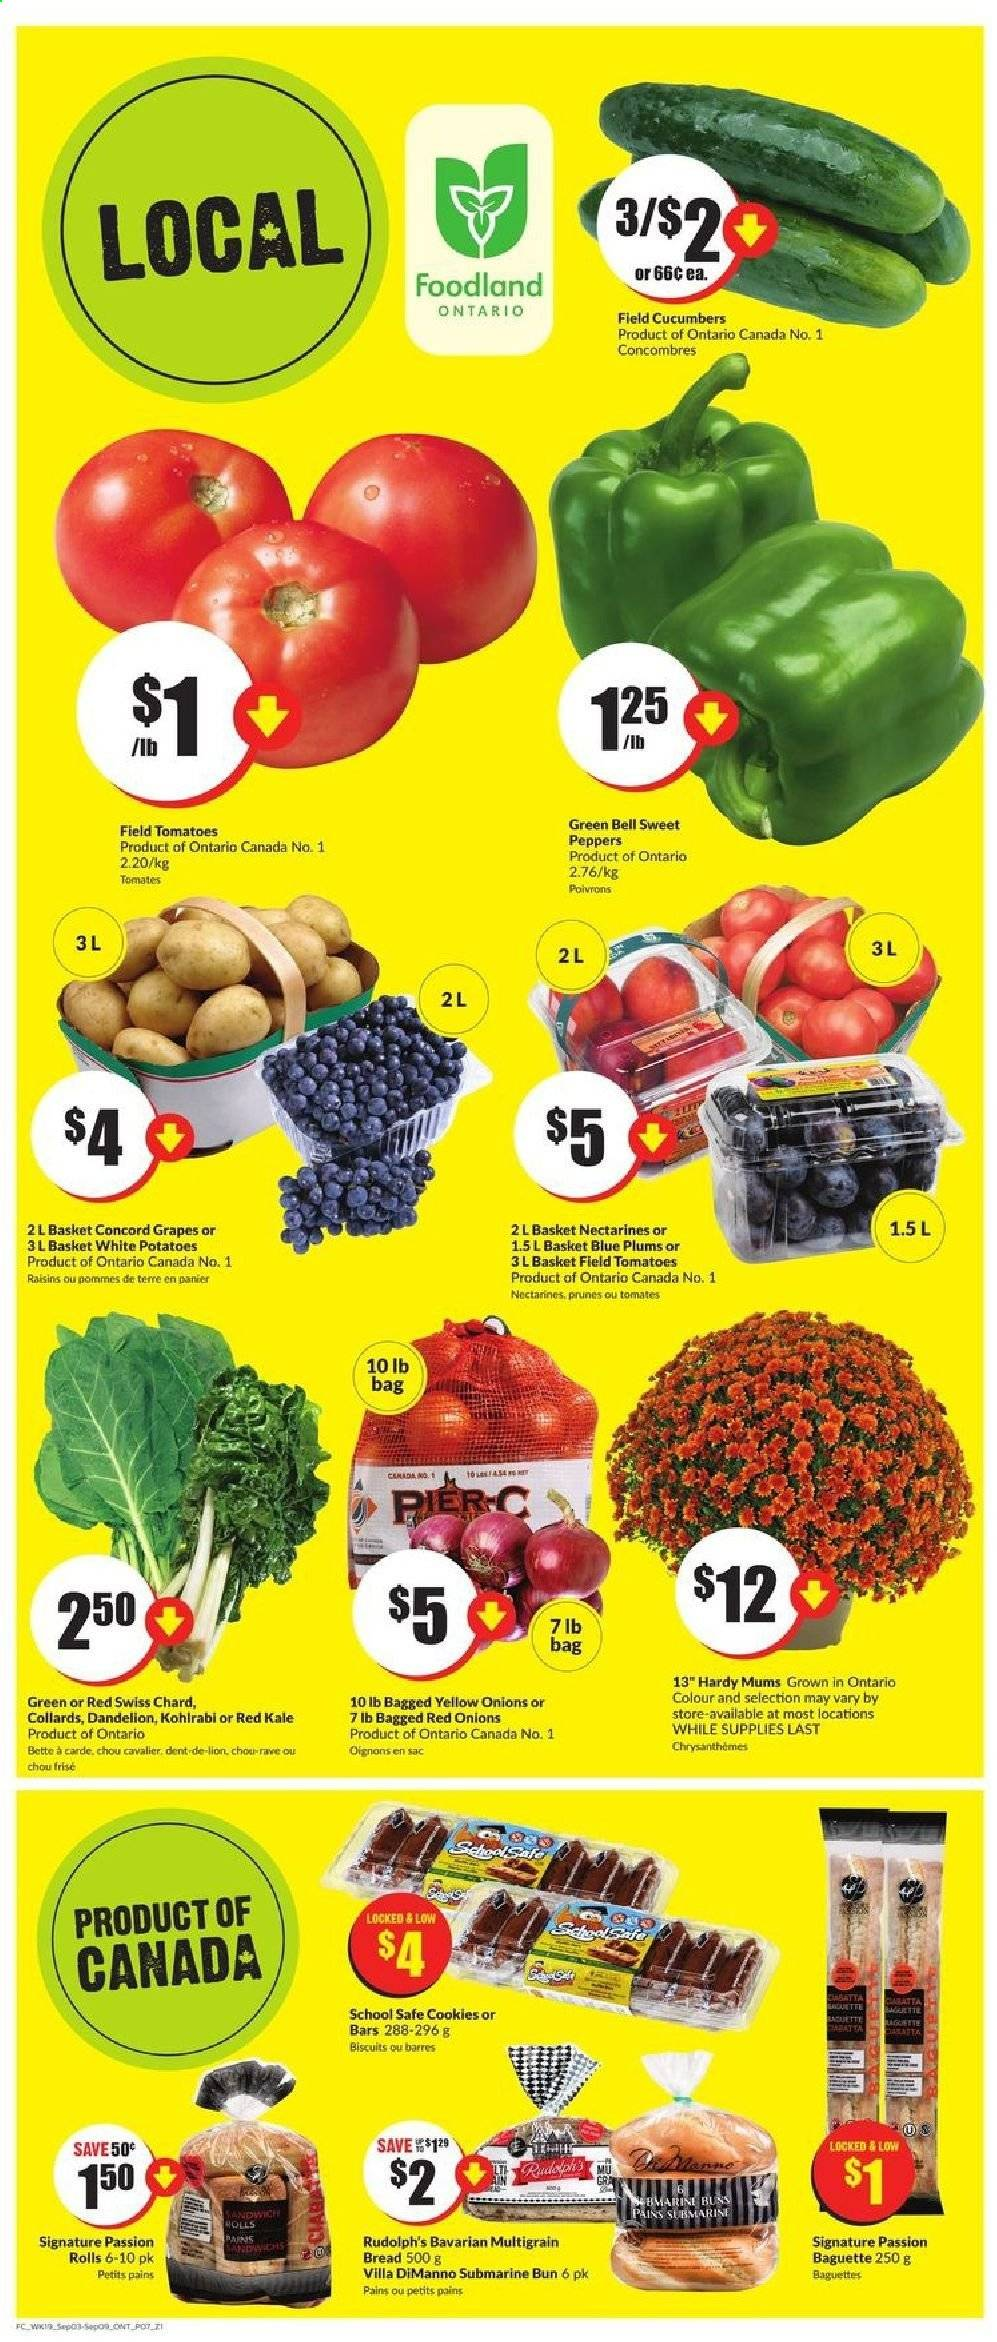 FreshCo. Flyer - September 03, 2020 - September 09, 2020 - Sales products - baguette, basket, biscuits, bread, cookies, cucumbers, grapes, kohlrabi, multigrain bread, nectarines, raisins, red onions, safe, tomatoes, yellow onions, kale, plums, potatoes, prunes, chard, onion, tomates, biscuit, cavalier, chou, prune, oignons, panier, sac, poivrons, pommes de terre, rolls, tomato, onions. Page 7.